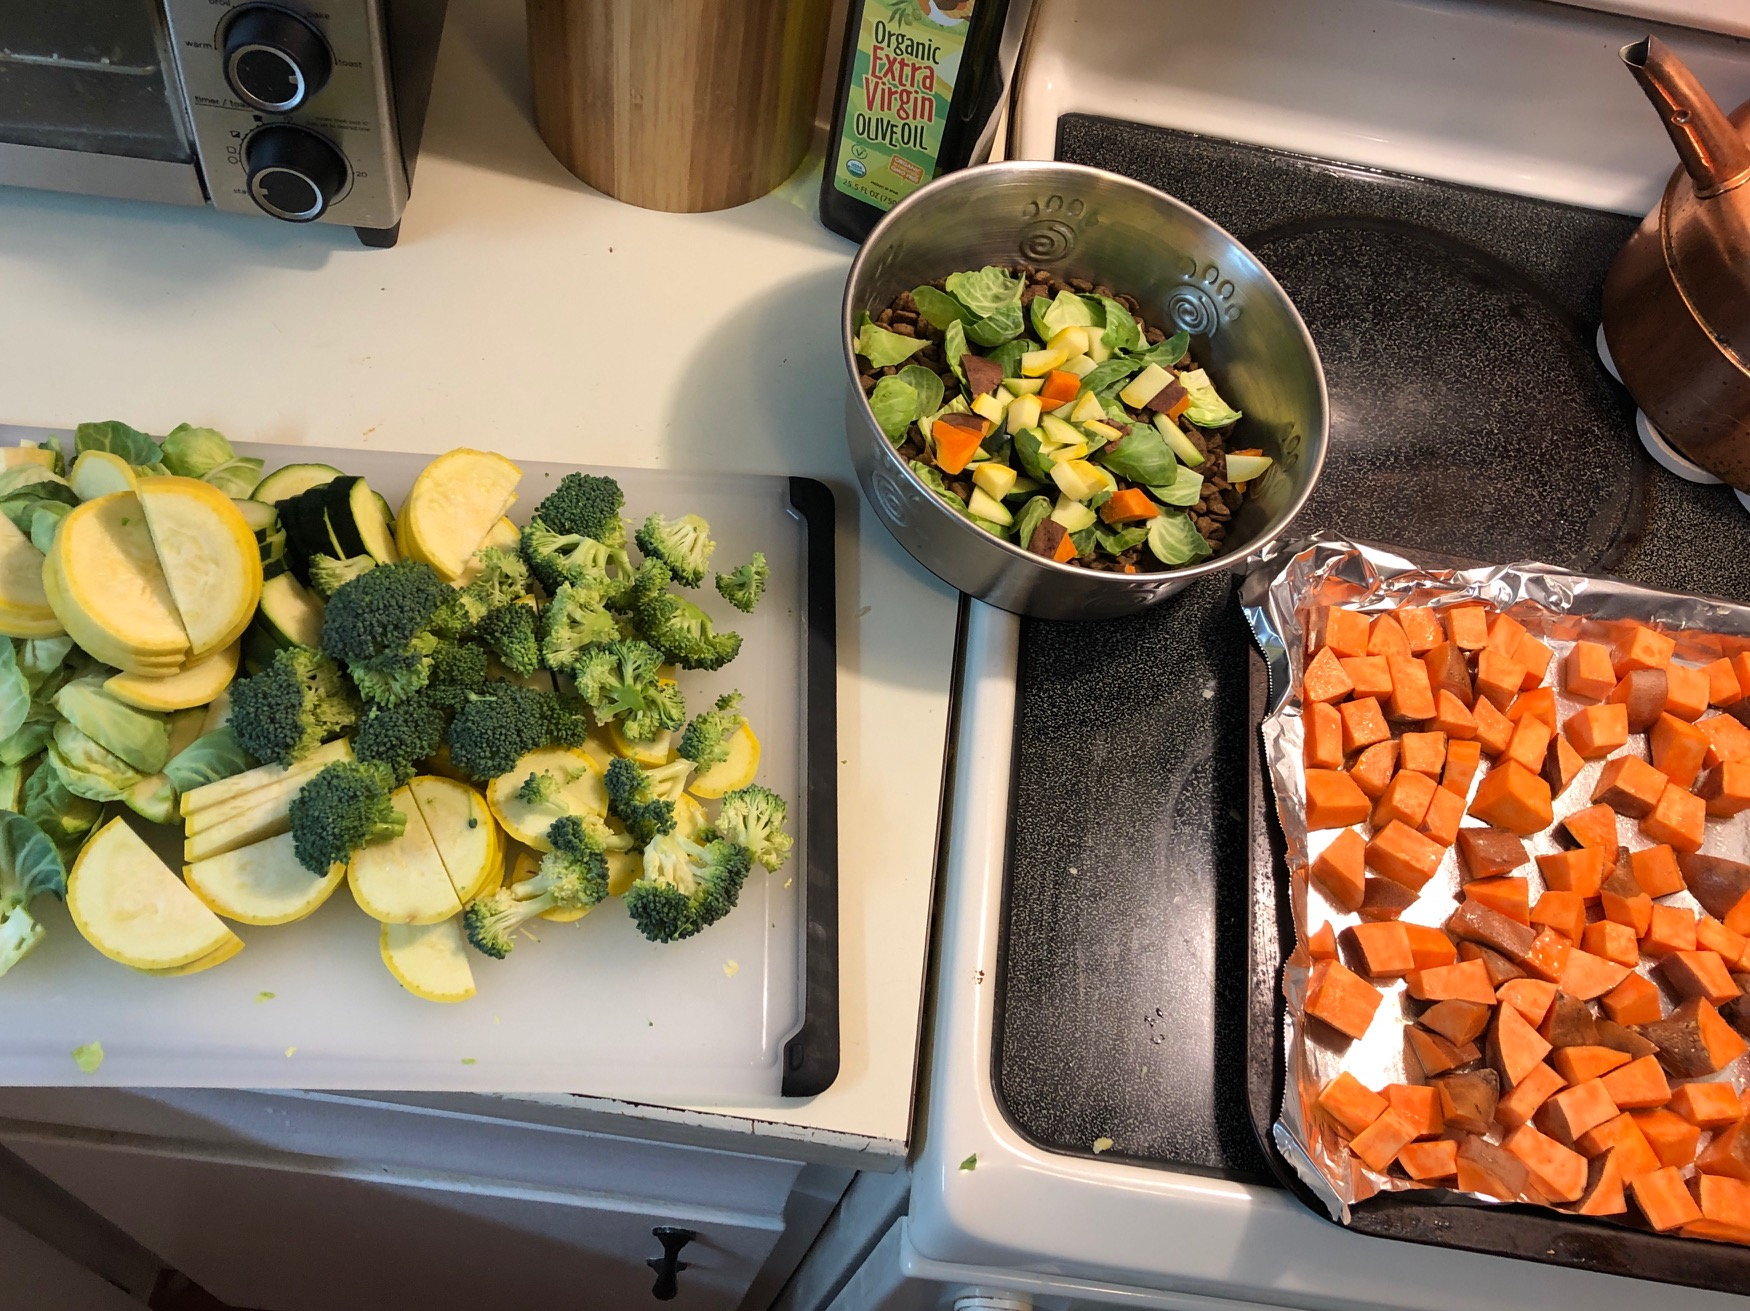 Cutting up veggies to roast and then Stella gets some of the veggies scraps for her dinner on Sunday too! She LOVES them all.